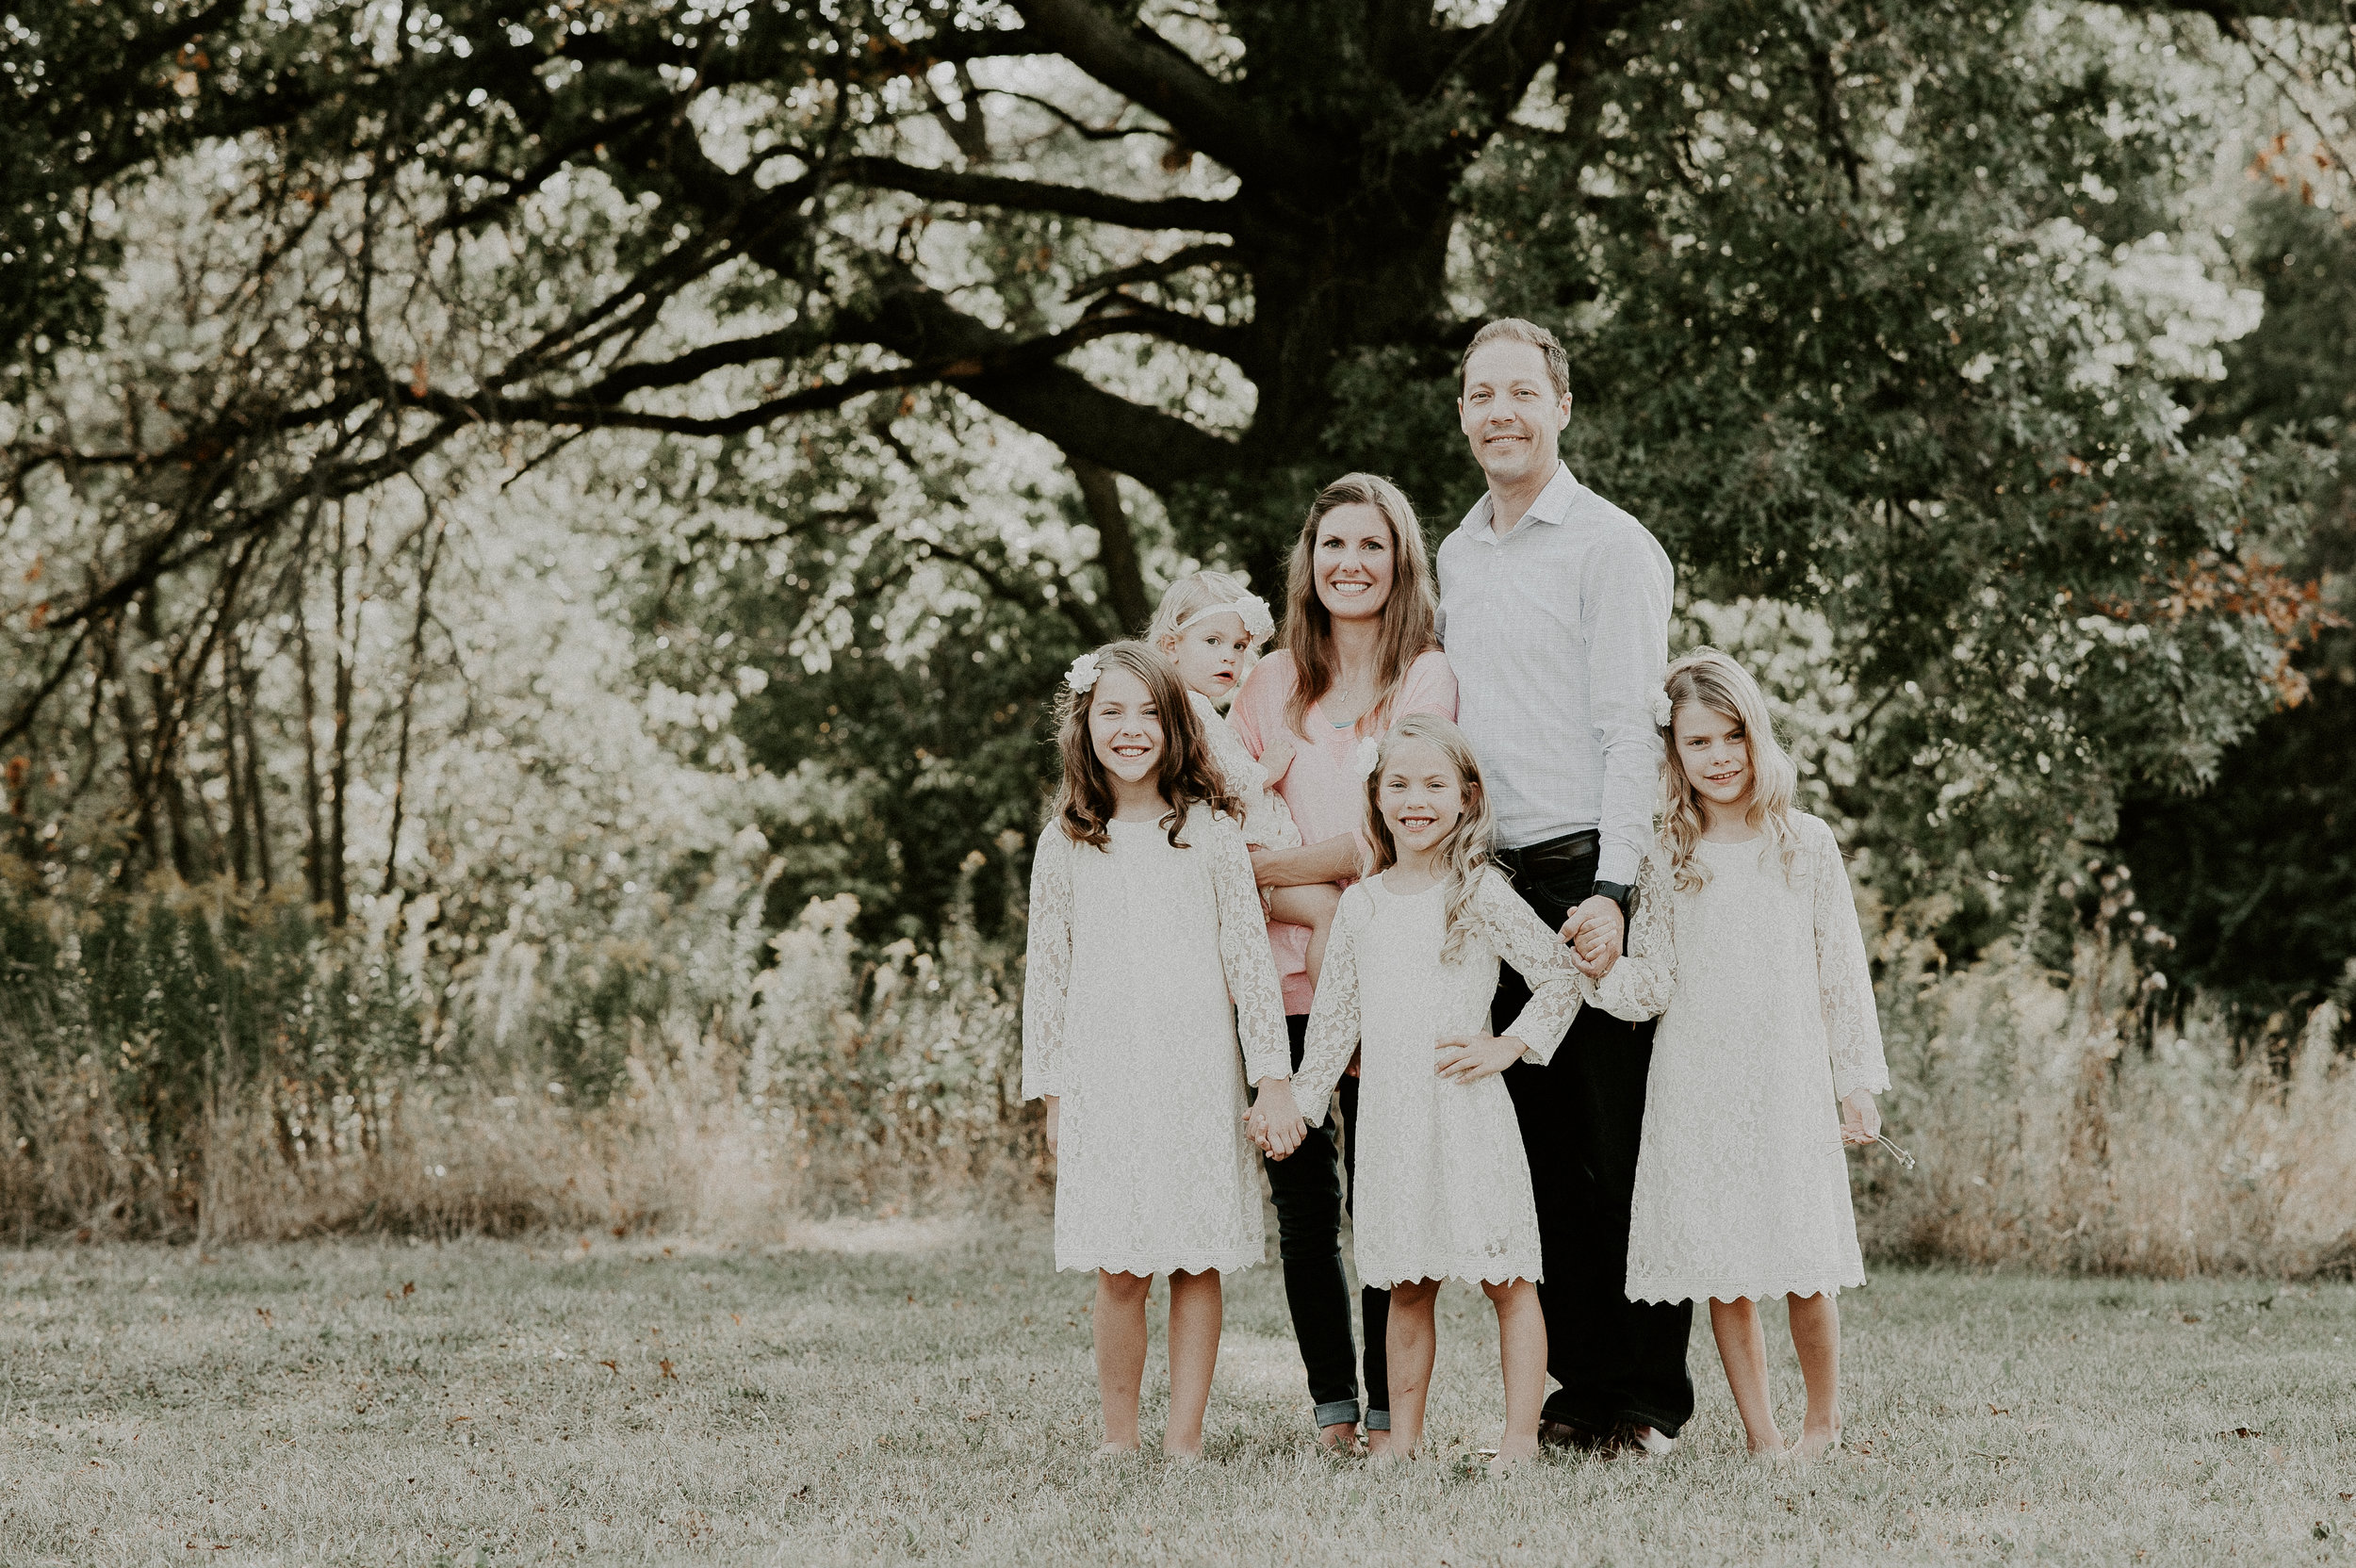 Kenelly - Family